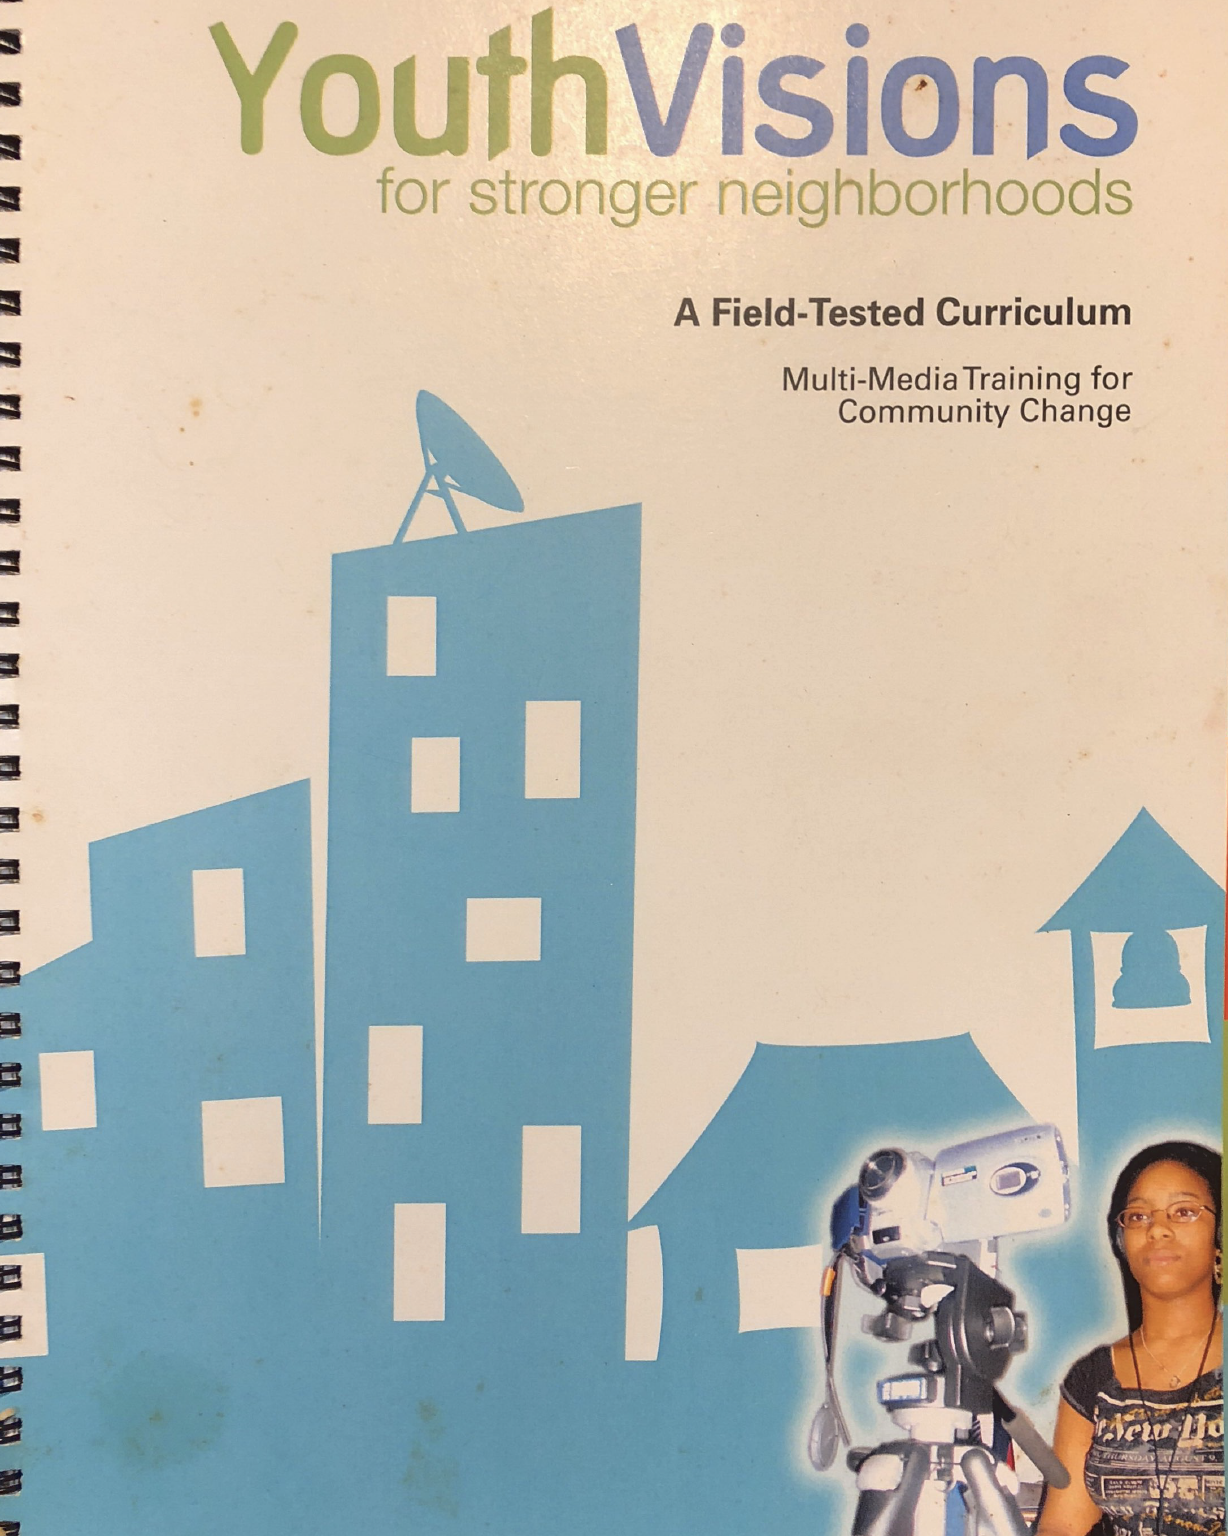 Youth Visions for Stronger Neighborhoods